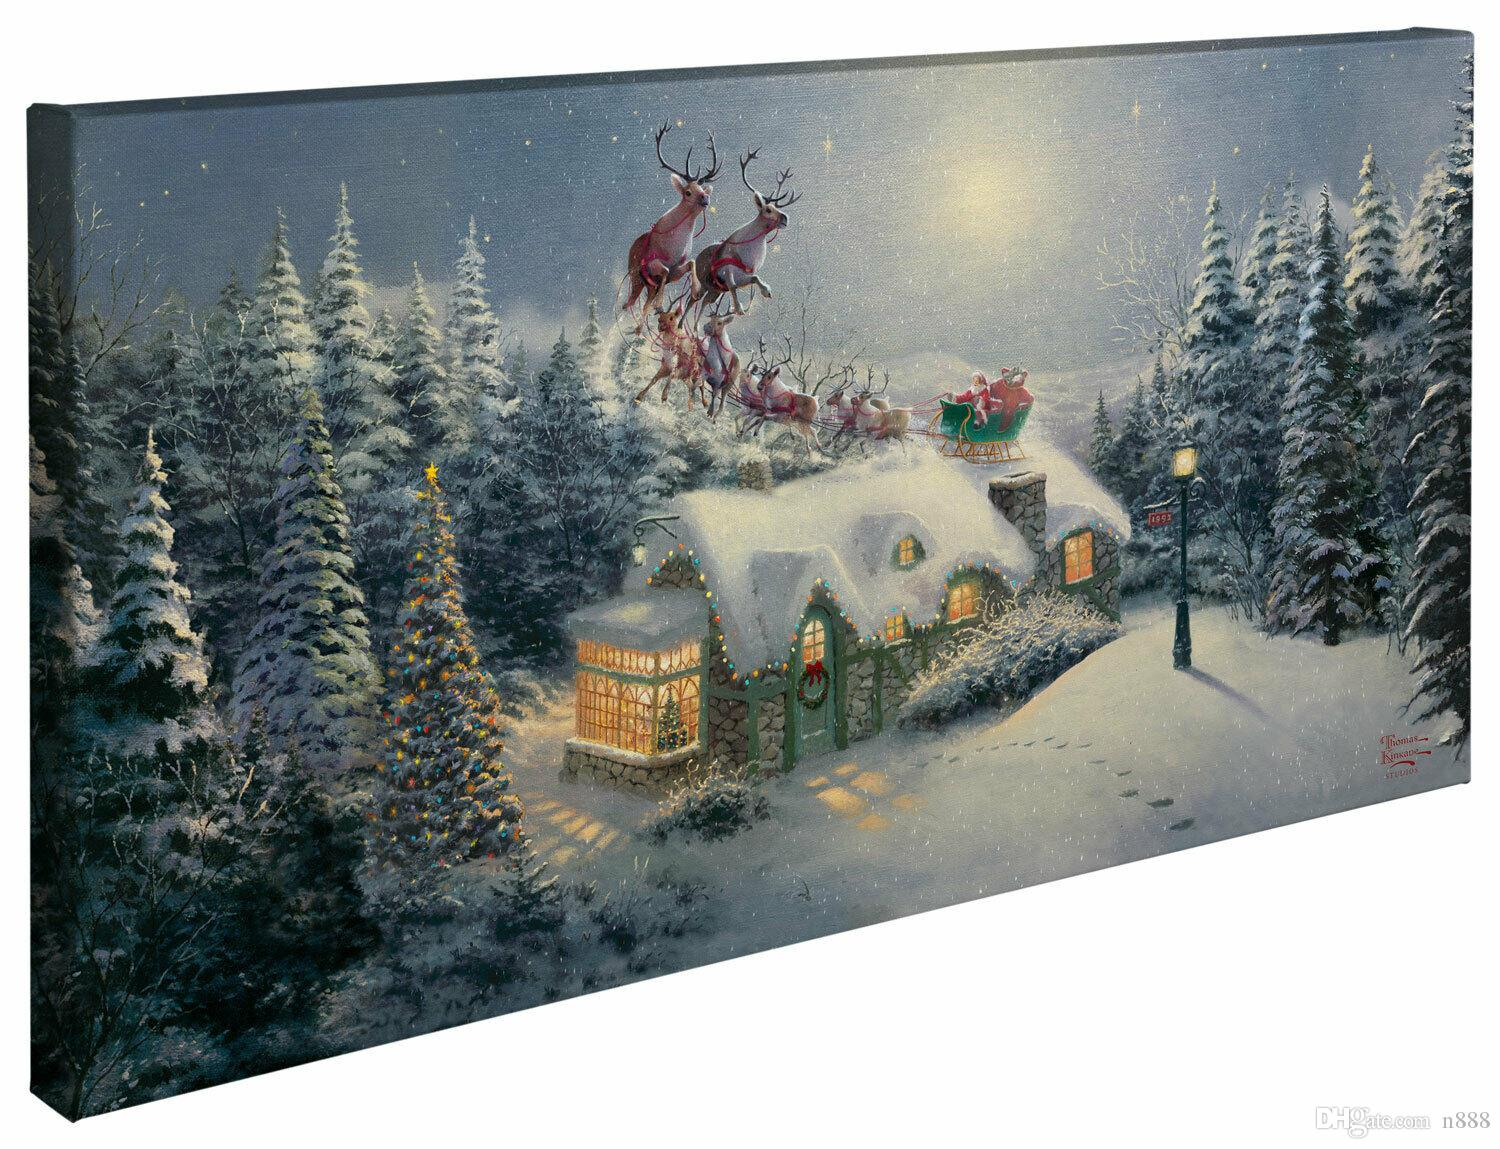 NEW Thomas Kinkade Christmas DASH AWAY ALL Home Wall Art Decor Oil Painting On Canvas Large Picture 190922